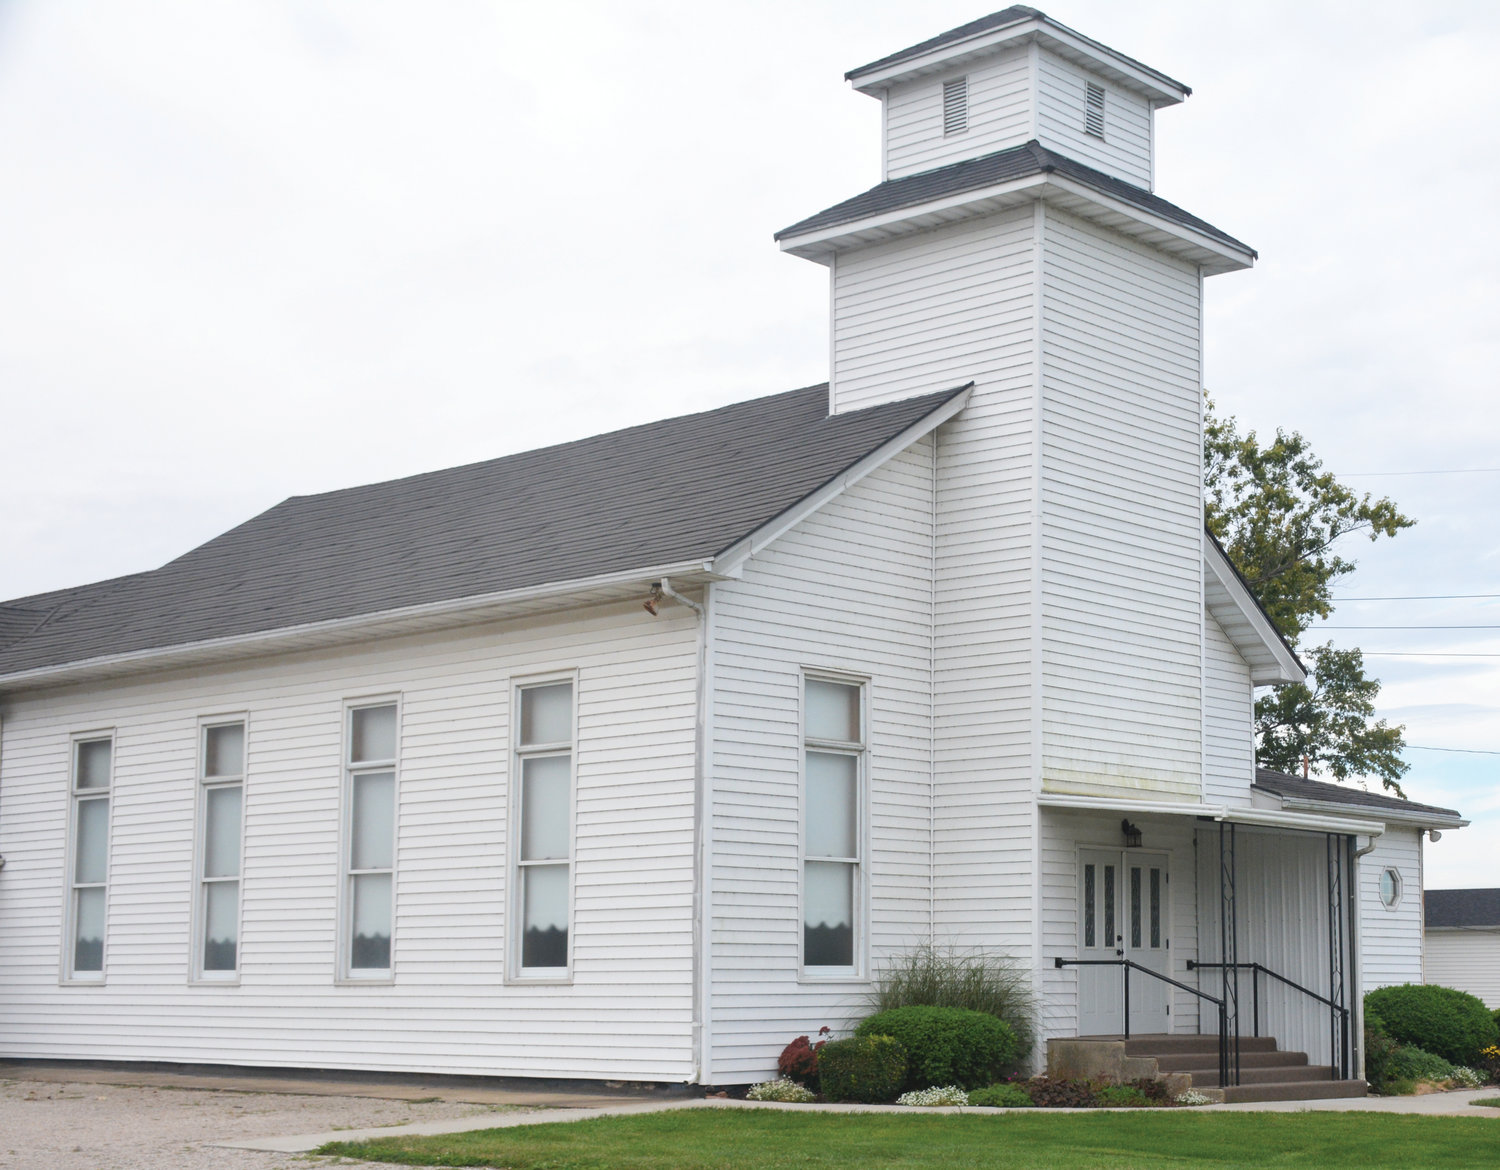 The Horace Baptist Church was built in the late 1870's when the Tucker and Johnson families donated land to the church. The original structure still stands with additional space added on as the church congregation grew throughout the long history. The church is celebrating its 144th anniversary Oct. 7.  (Special to The Prairie Press)